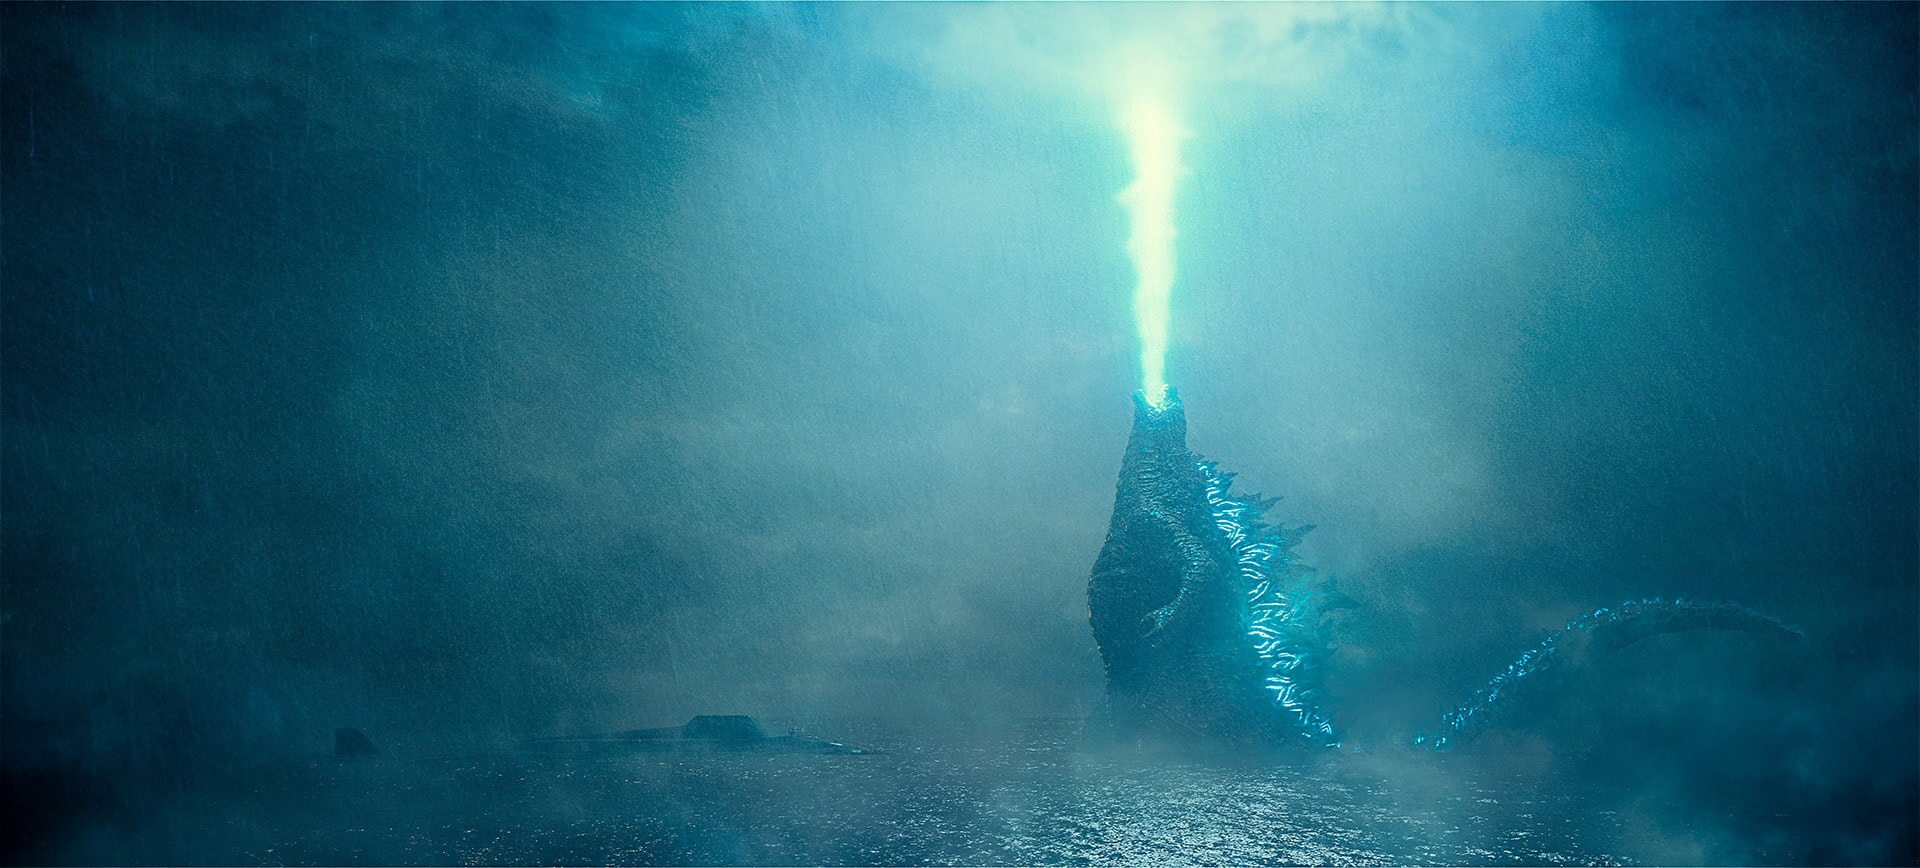 Godzilla rises from the depths and unleashes his atomic breath to claim his crown as King of the Monsters